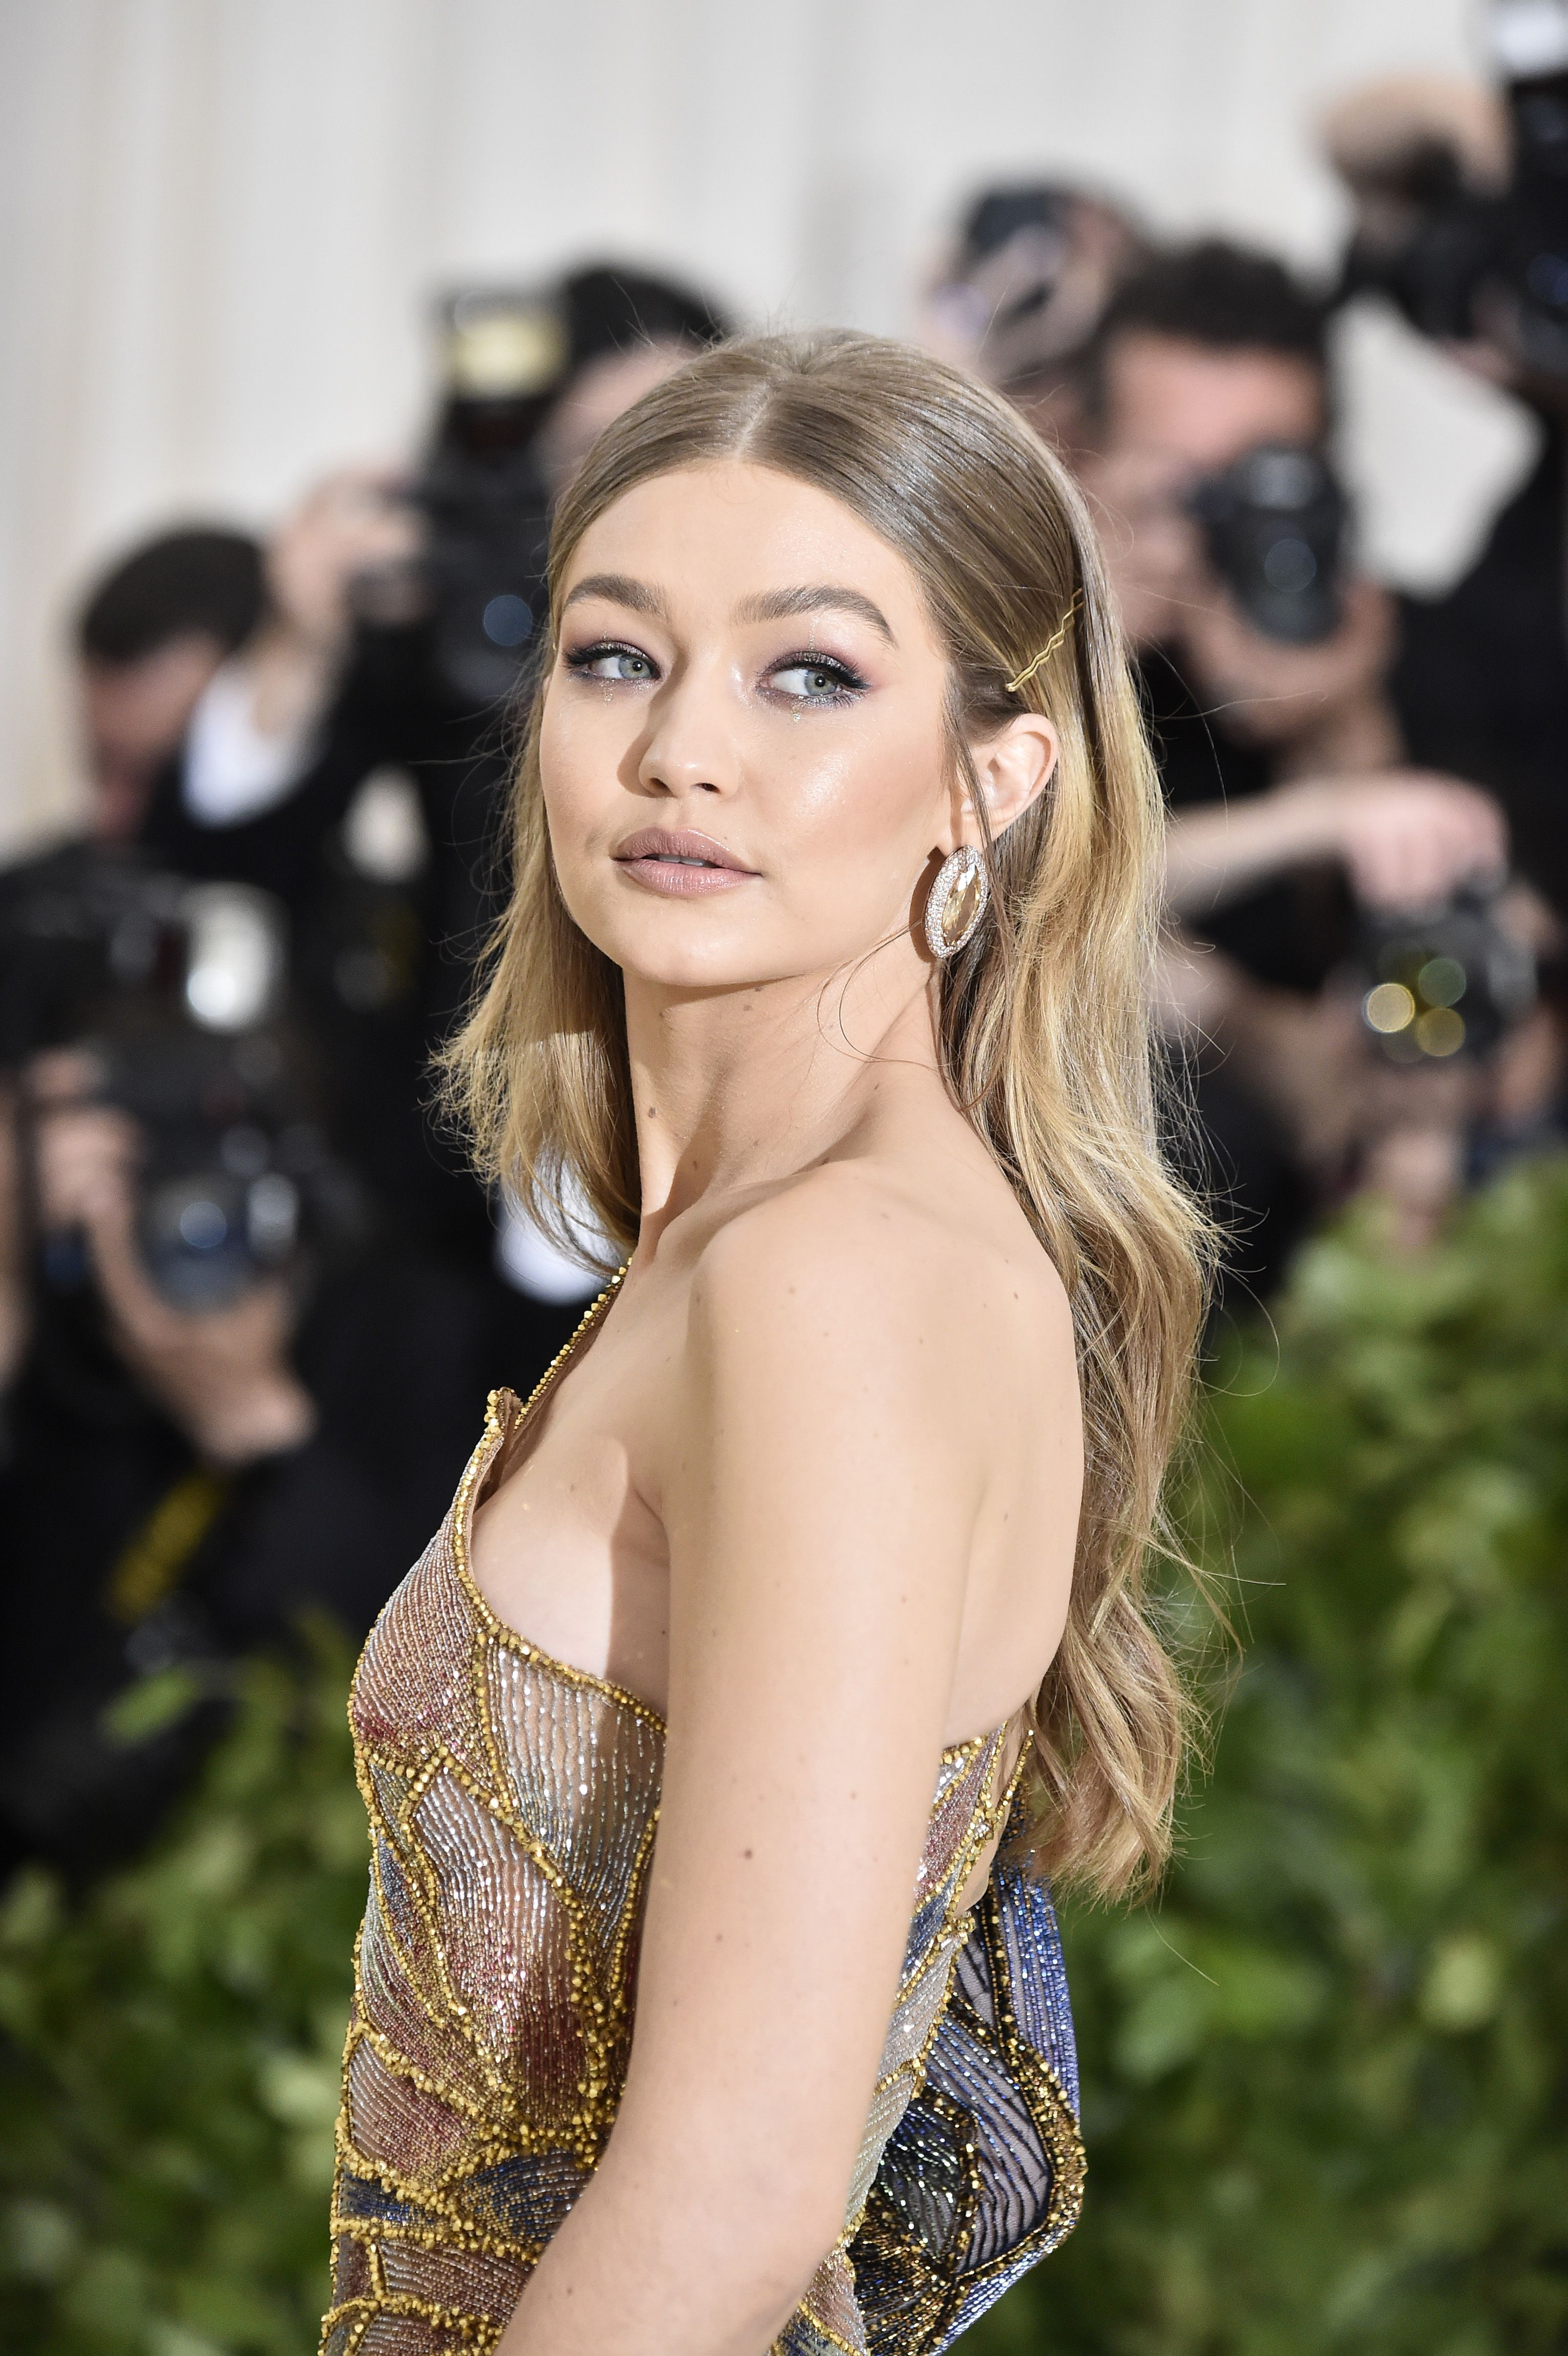 Gigi Hadid's Unseen Photos From Fashion Month